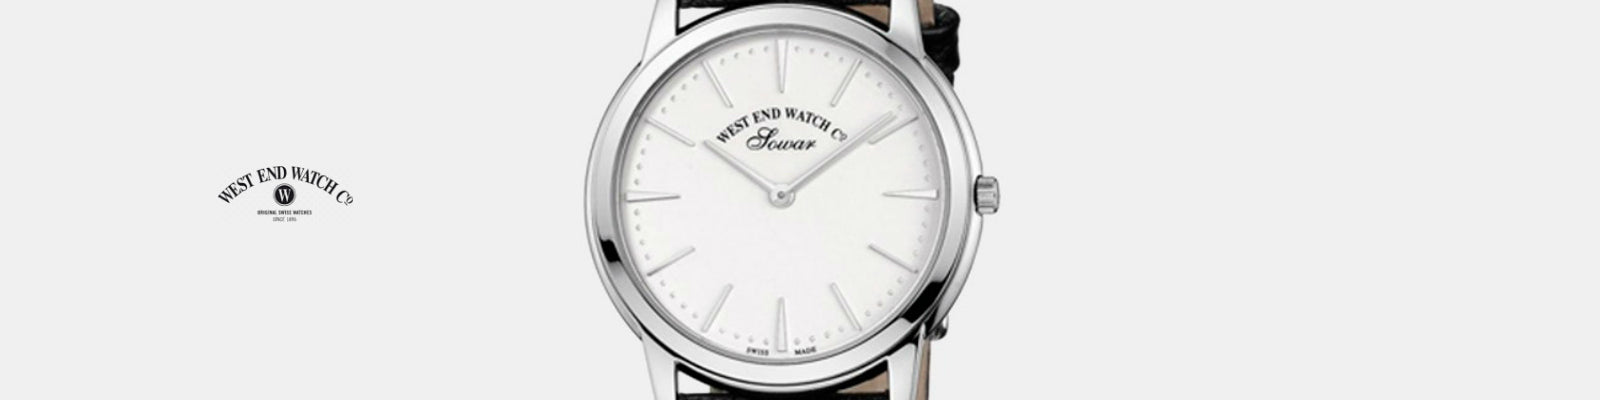 West End Watch Co. Is Now Available